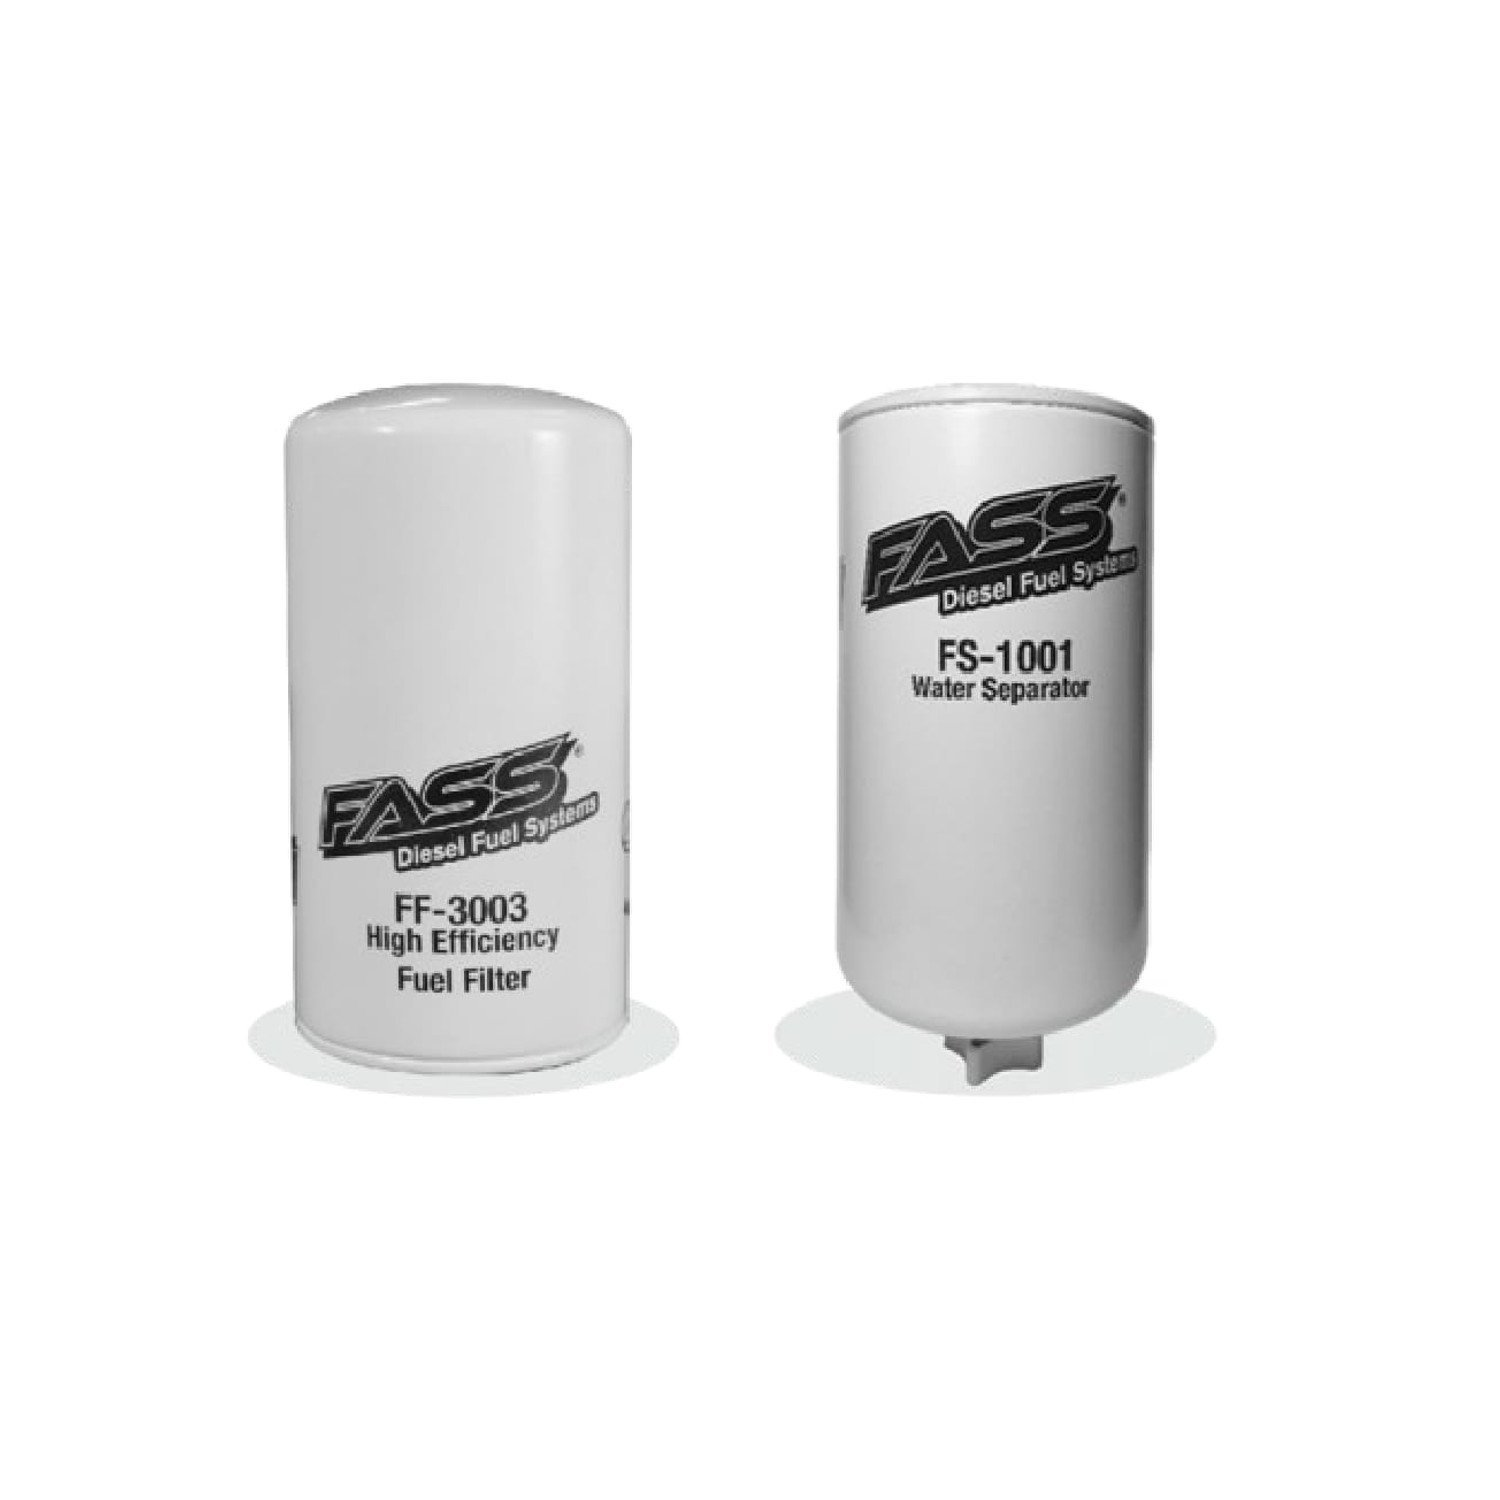 hight resolution of get quotations fass titanium series fuel filter and water separator combo with ff 3003 fuel filter and